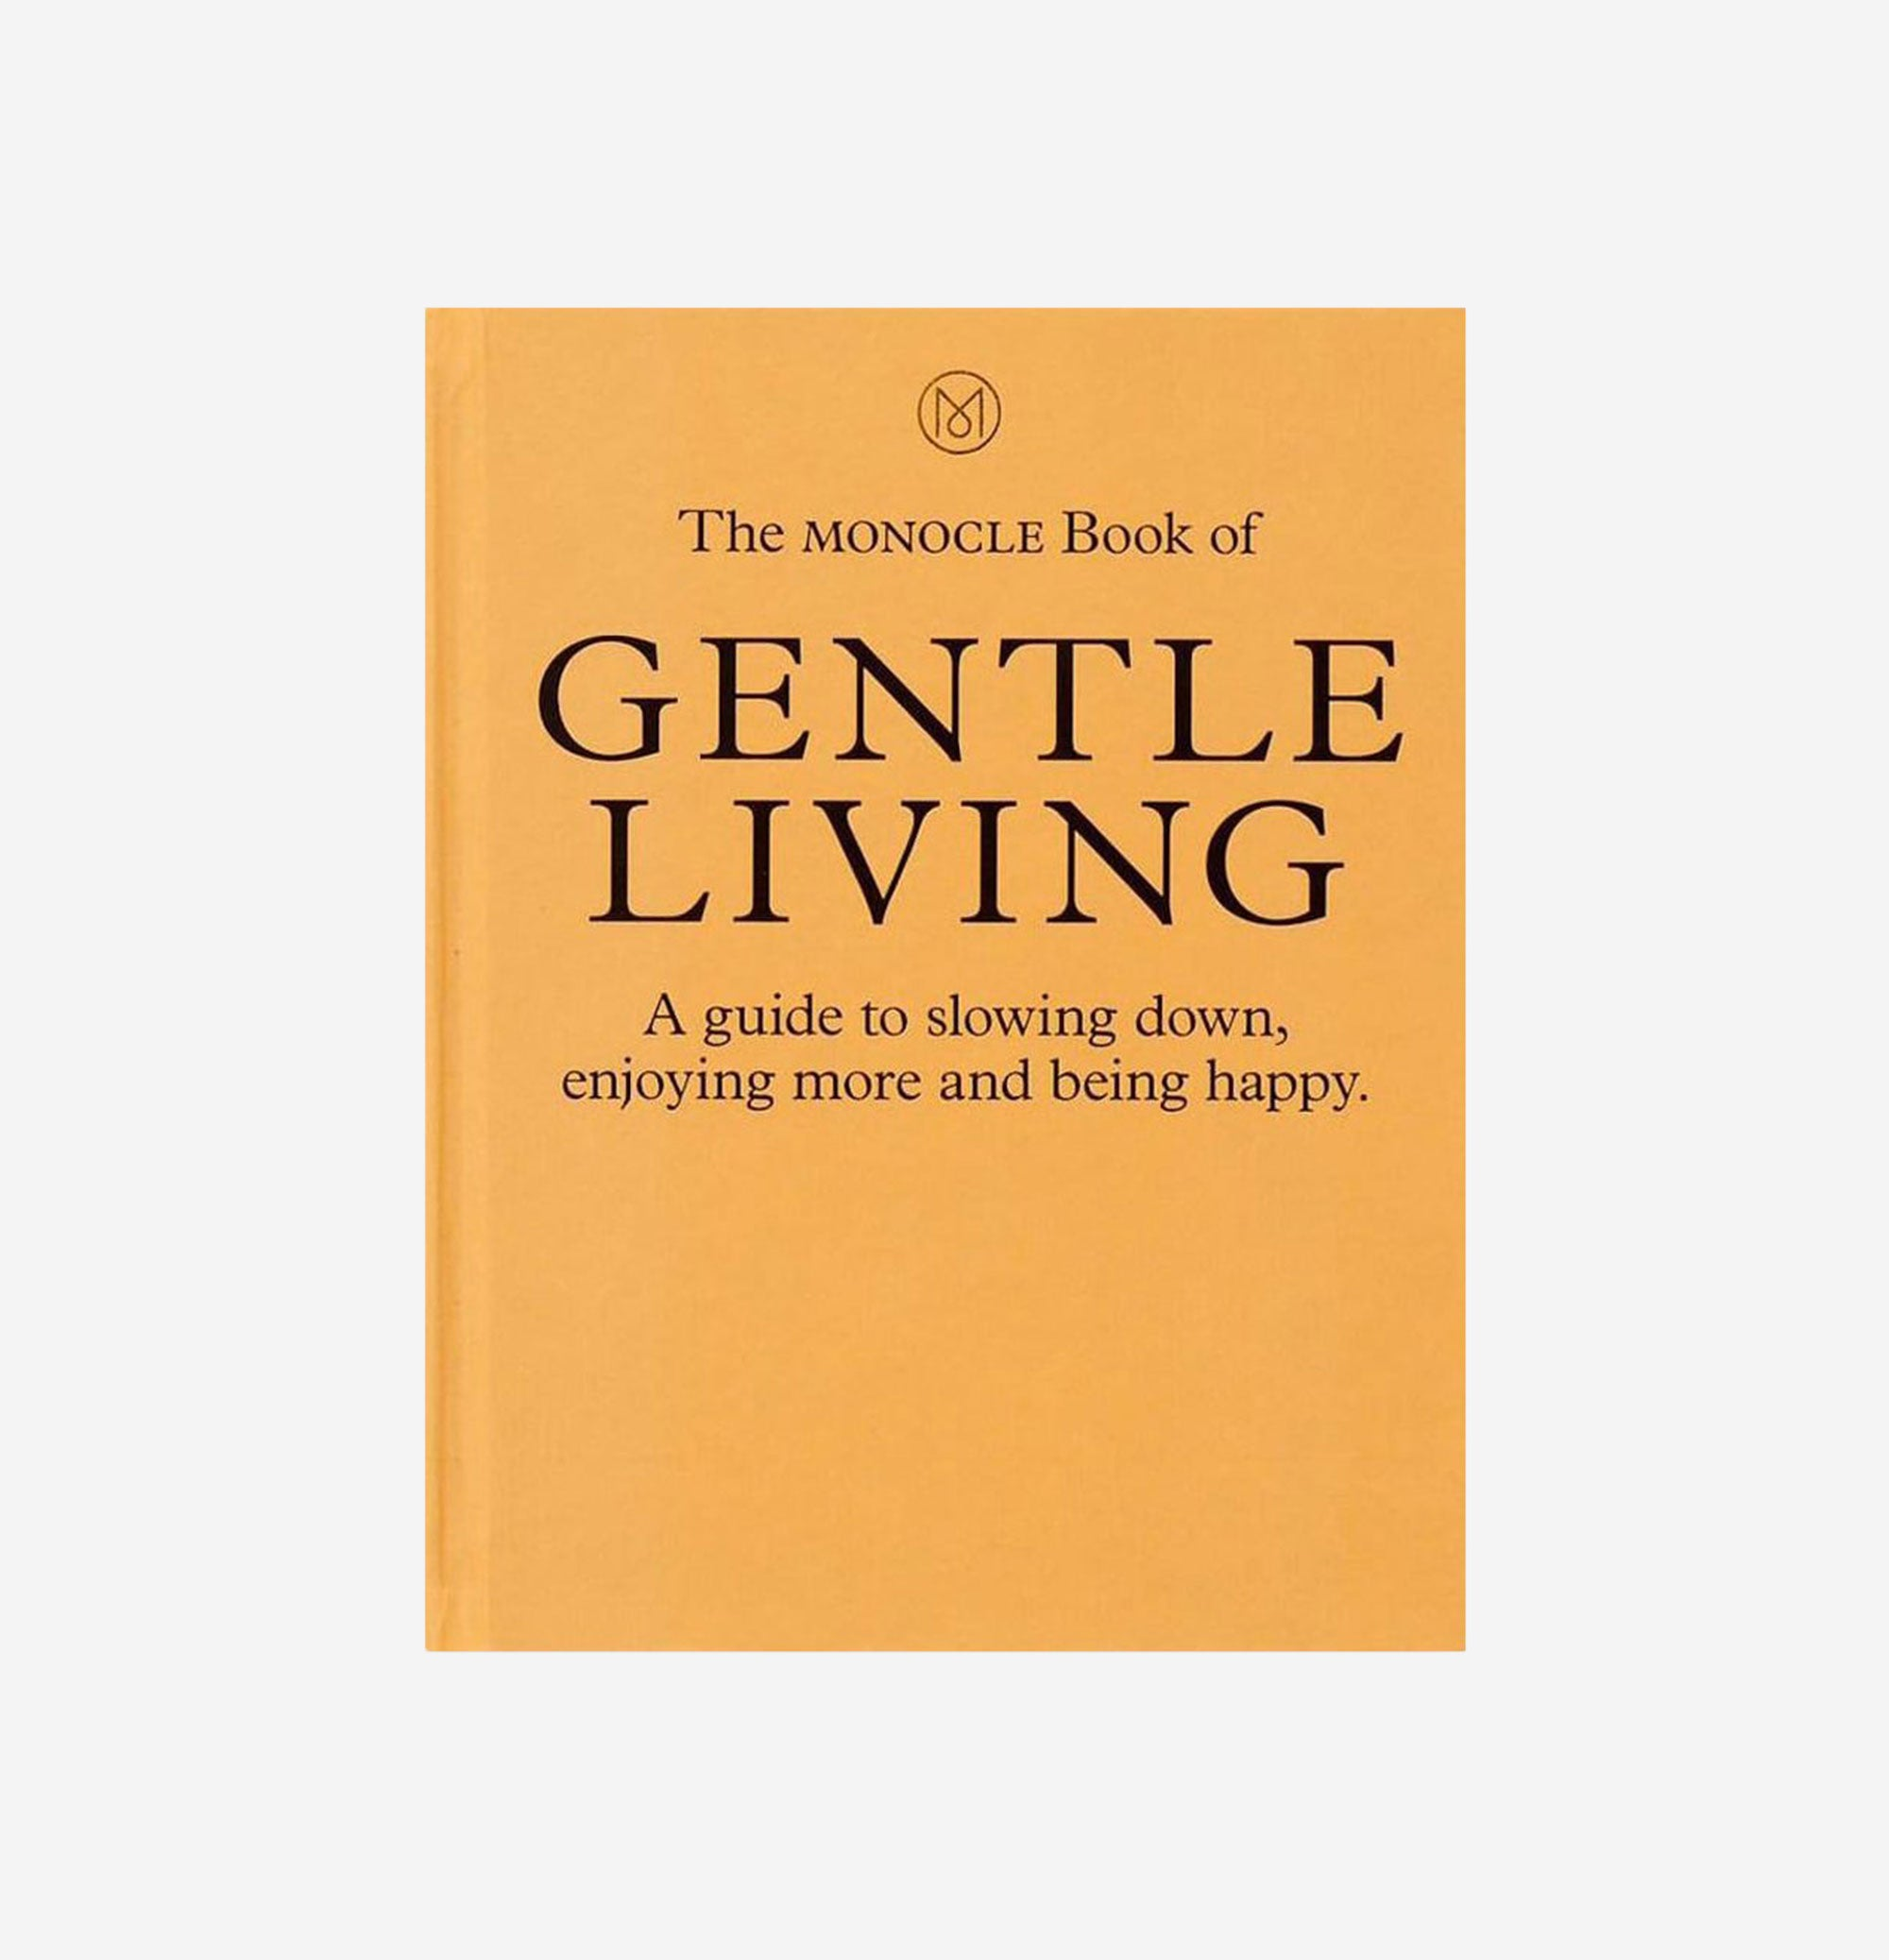 [Gentle living] - Book - James Ay